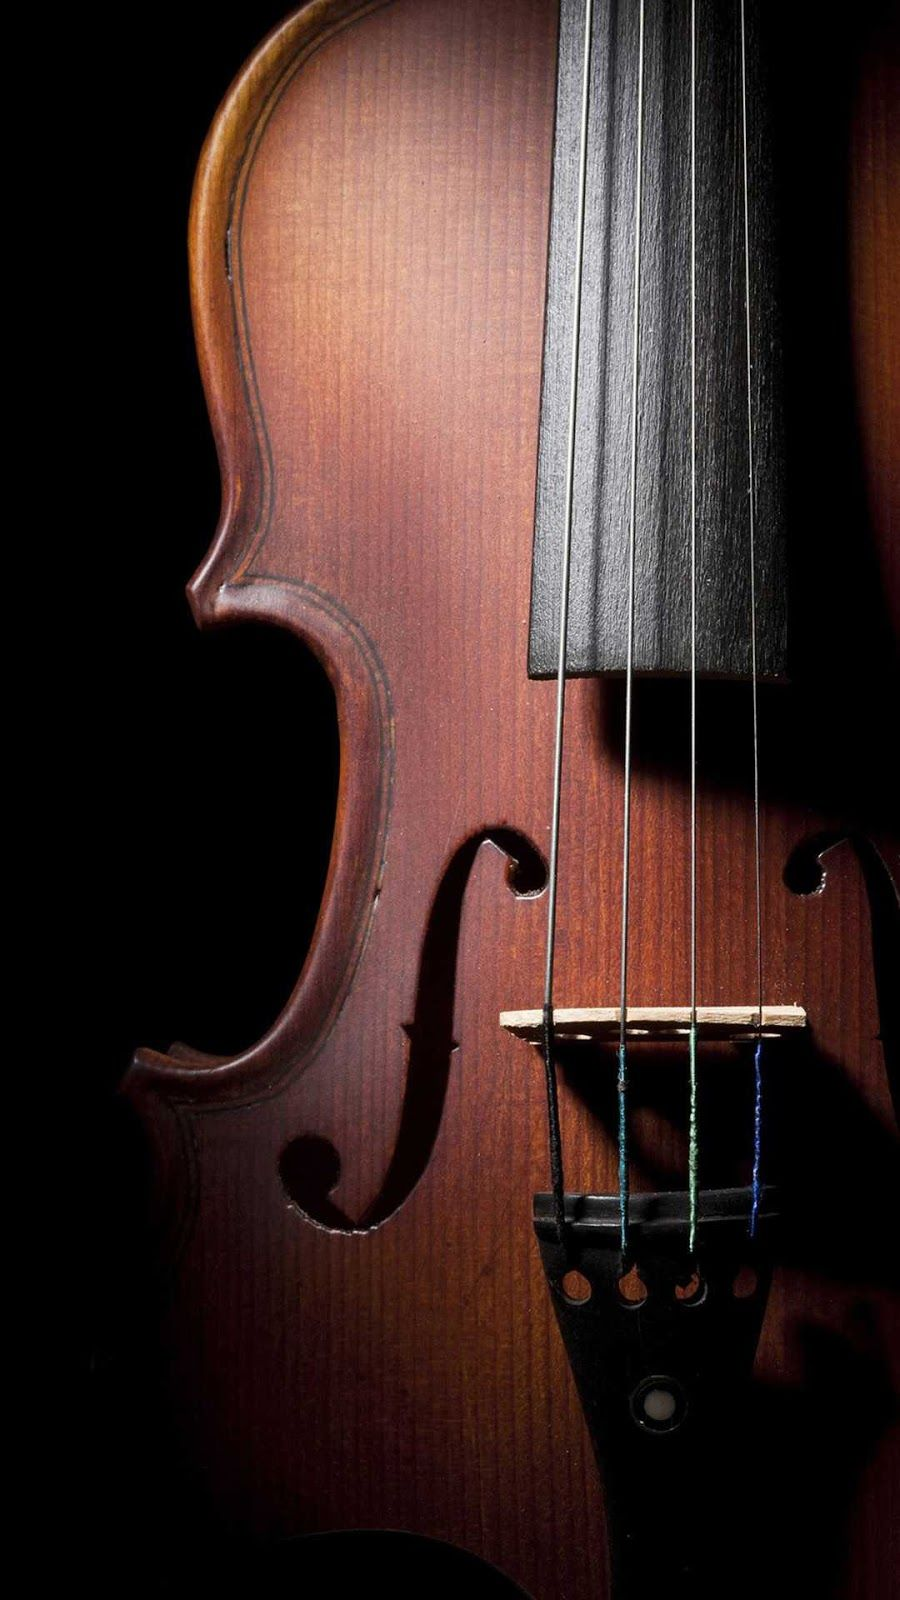 High Quality Mobile Smartphone Wallpapers And Backgrounds Full Hd 1080p Music Photography Cello Music Violin Art